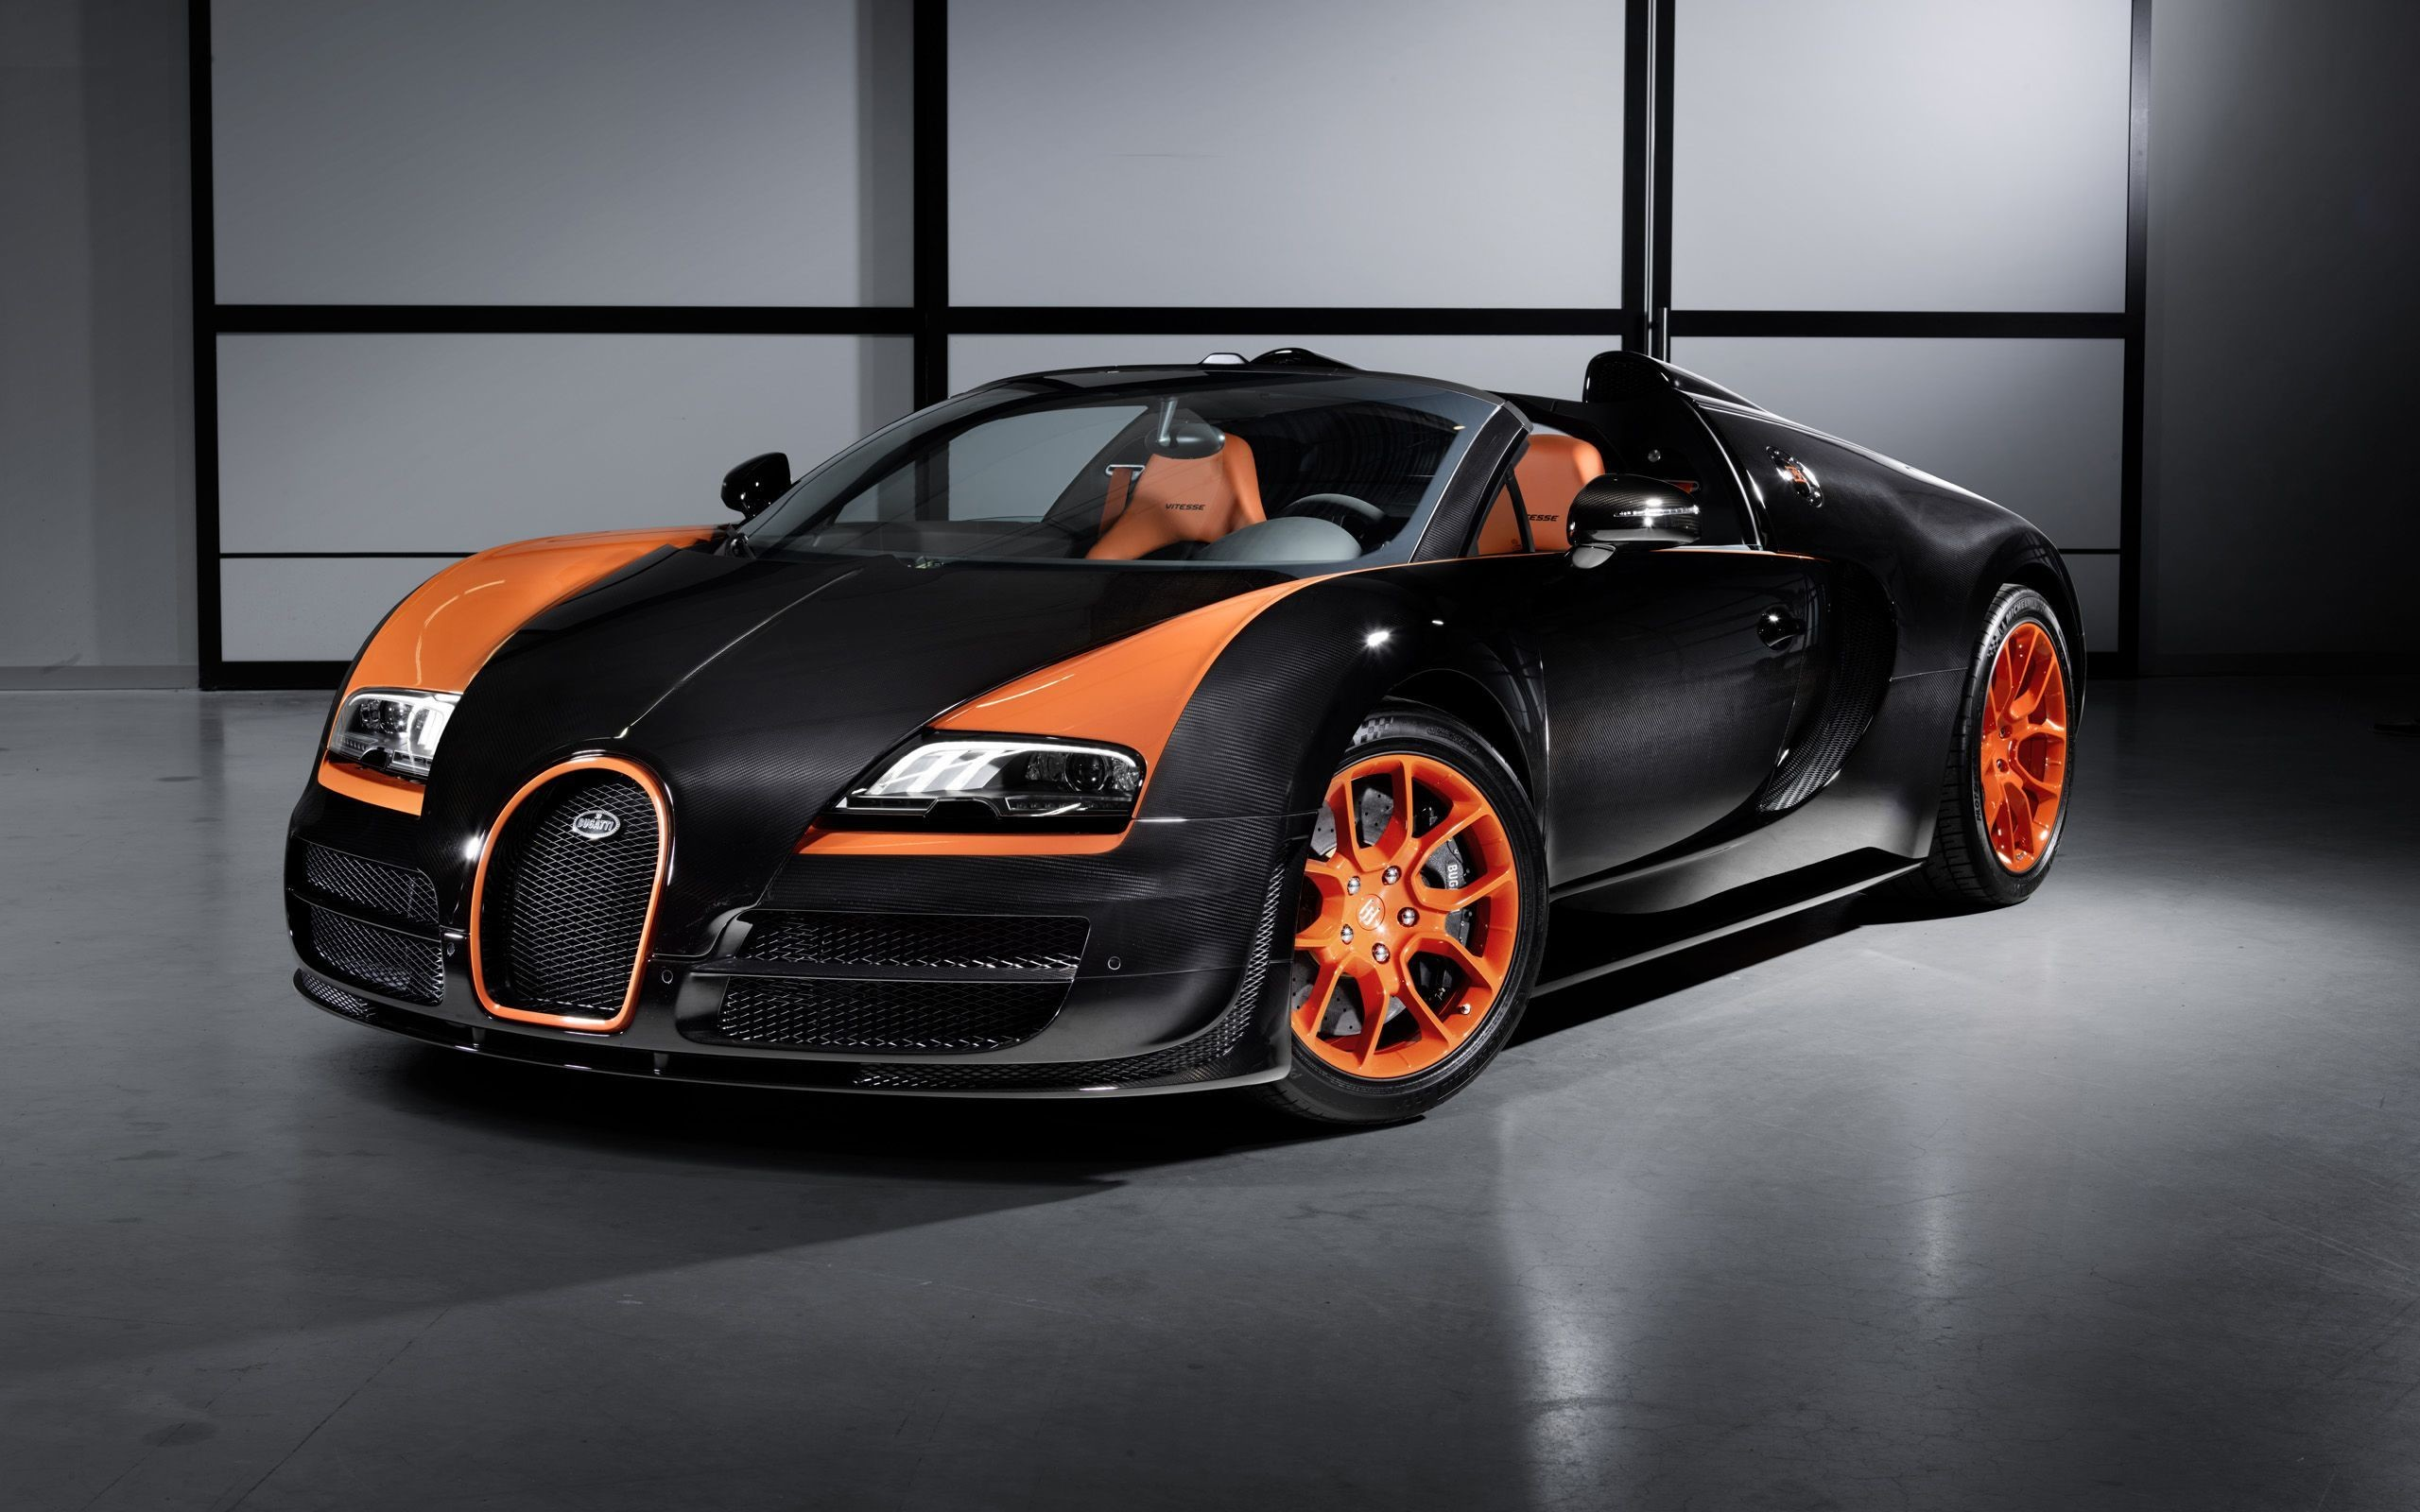 Res: 2560x1600, Hd Bugatti Car Full Pics Wallpaper Veyron Epic Of Iphone